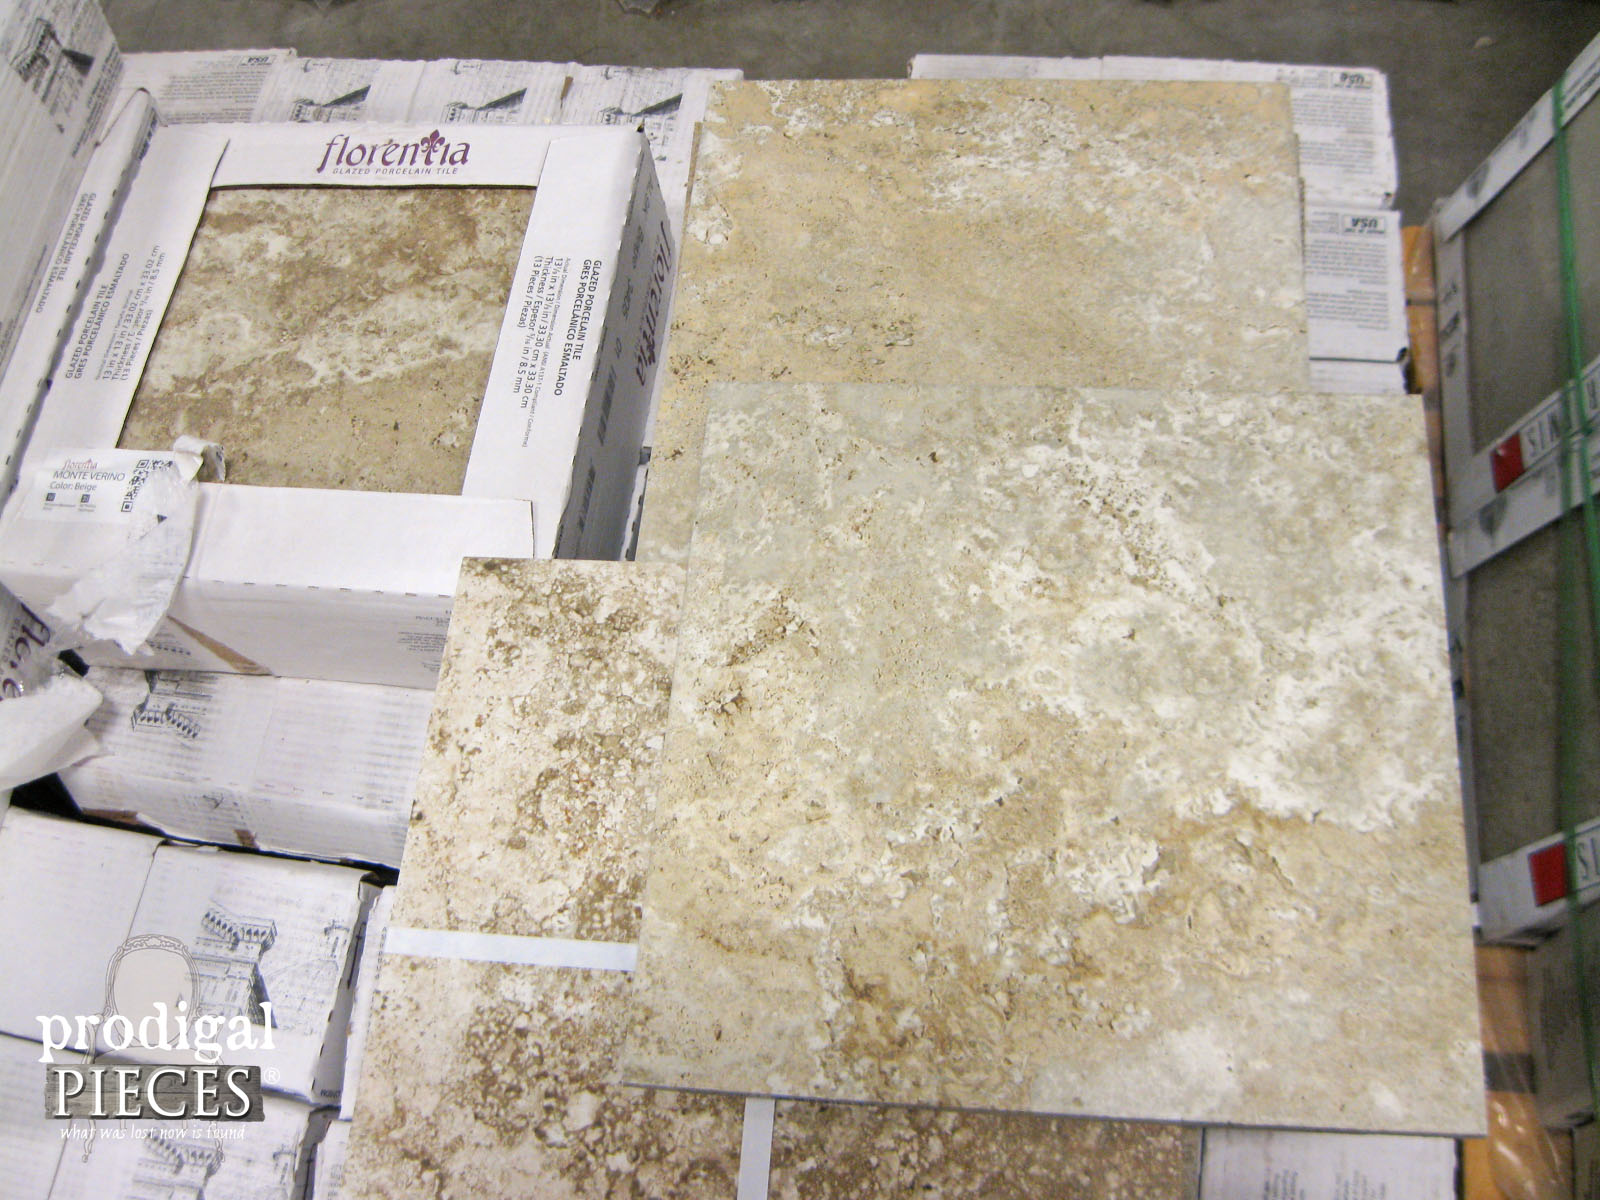 Choosing Flooring ~ A Stone Look Porcelain Tile | Prodigal Pieces | prodigalpieces.com